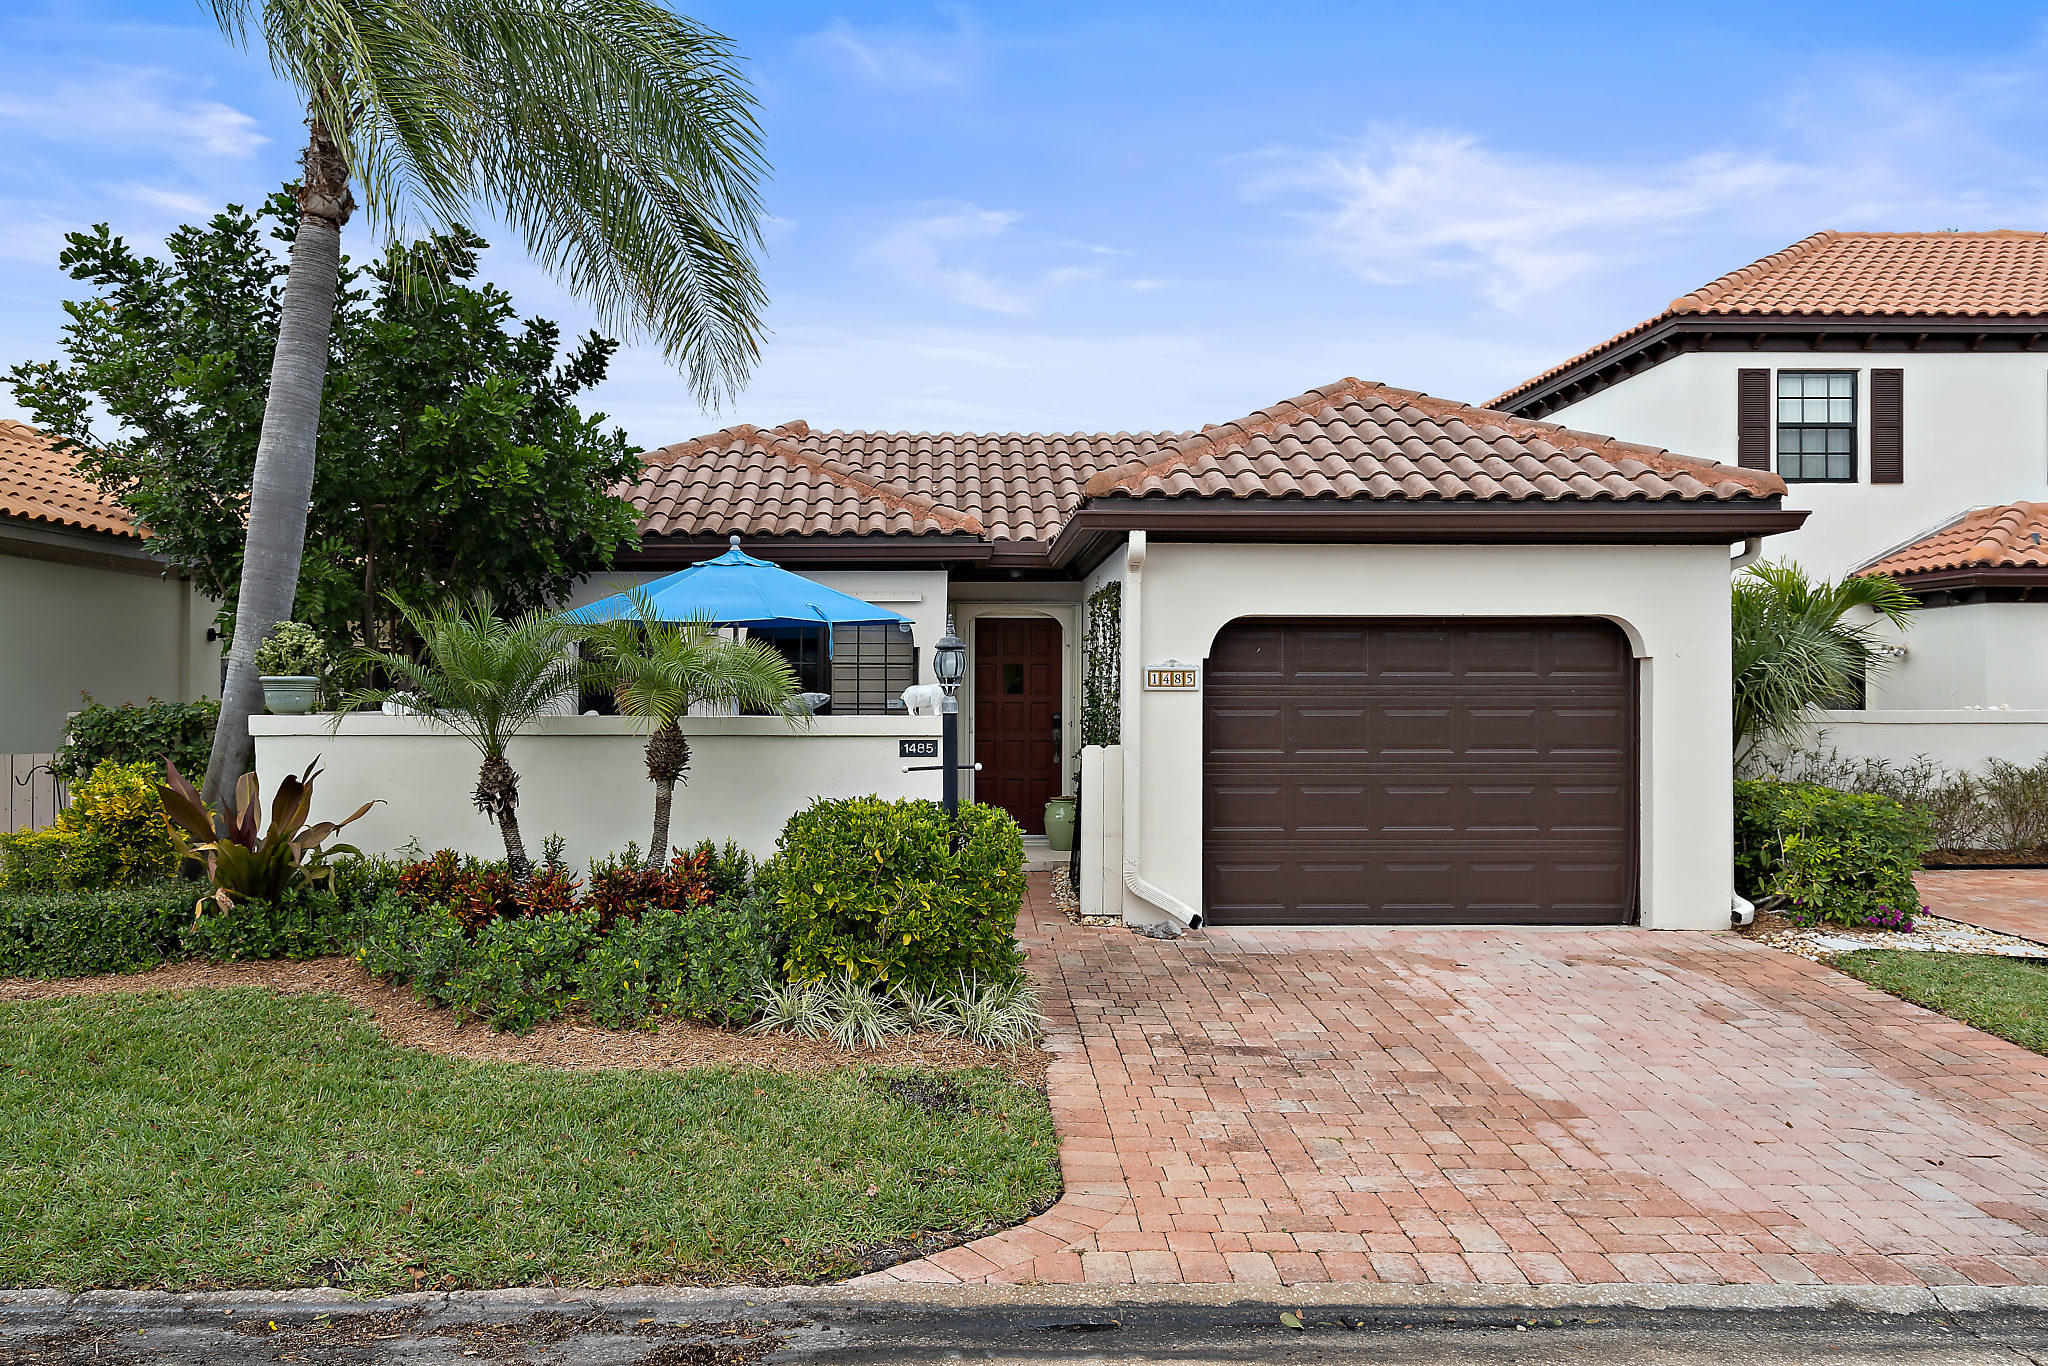 1485 Via Del Sol - Jupiter, Florida